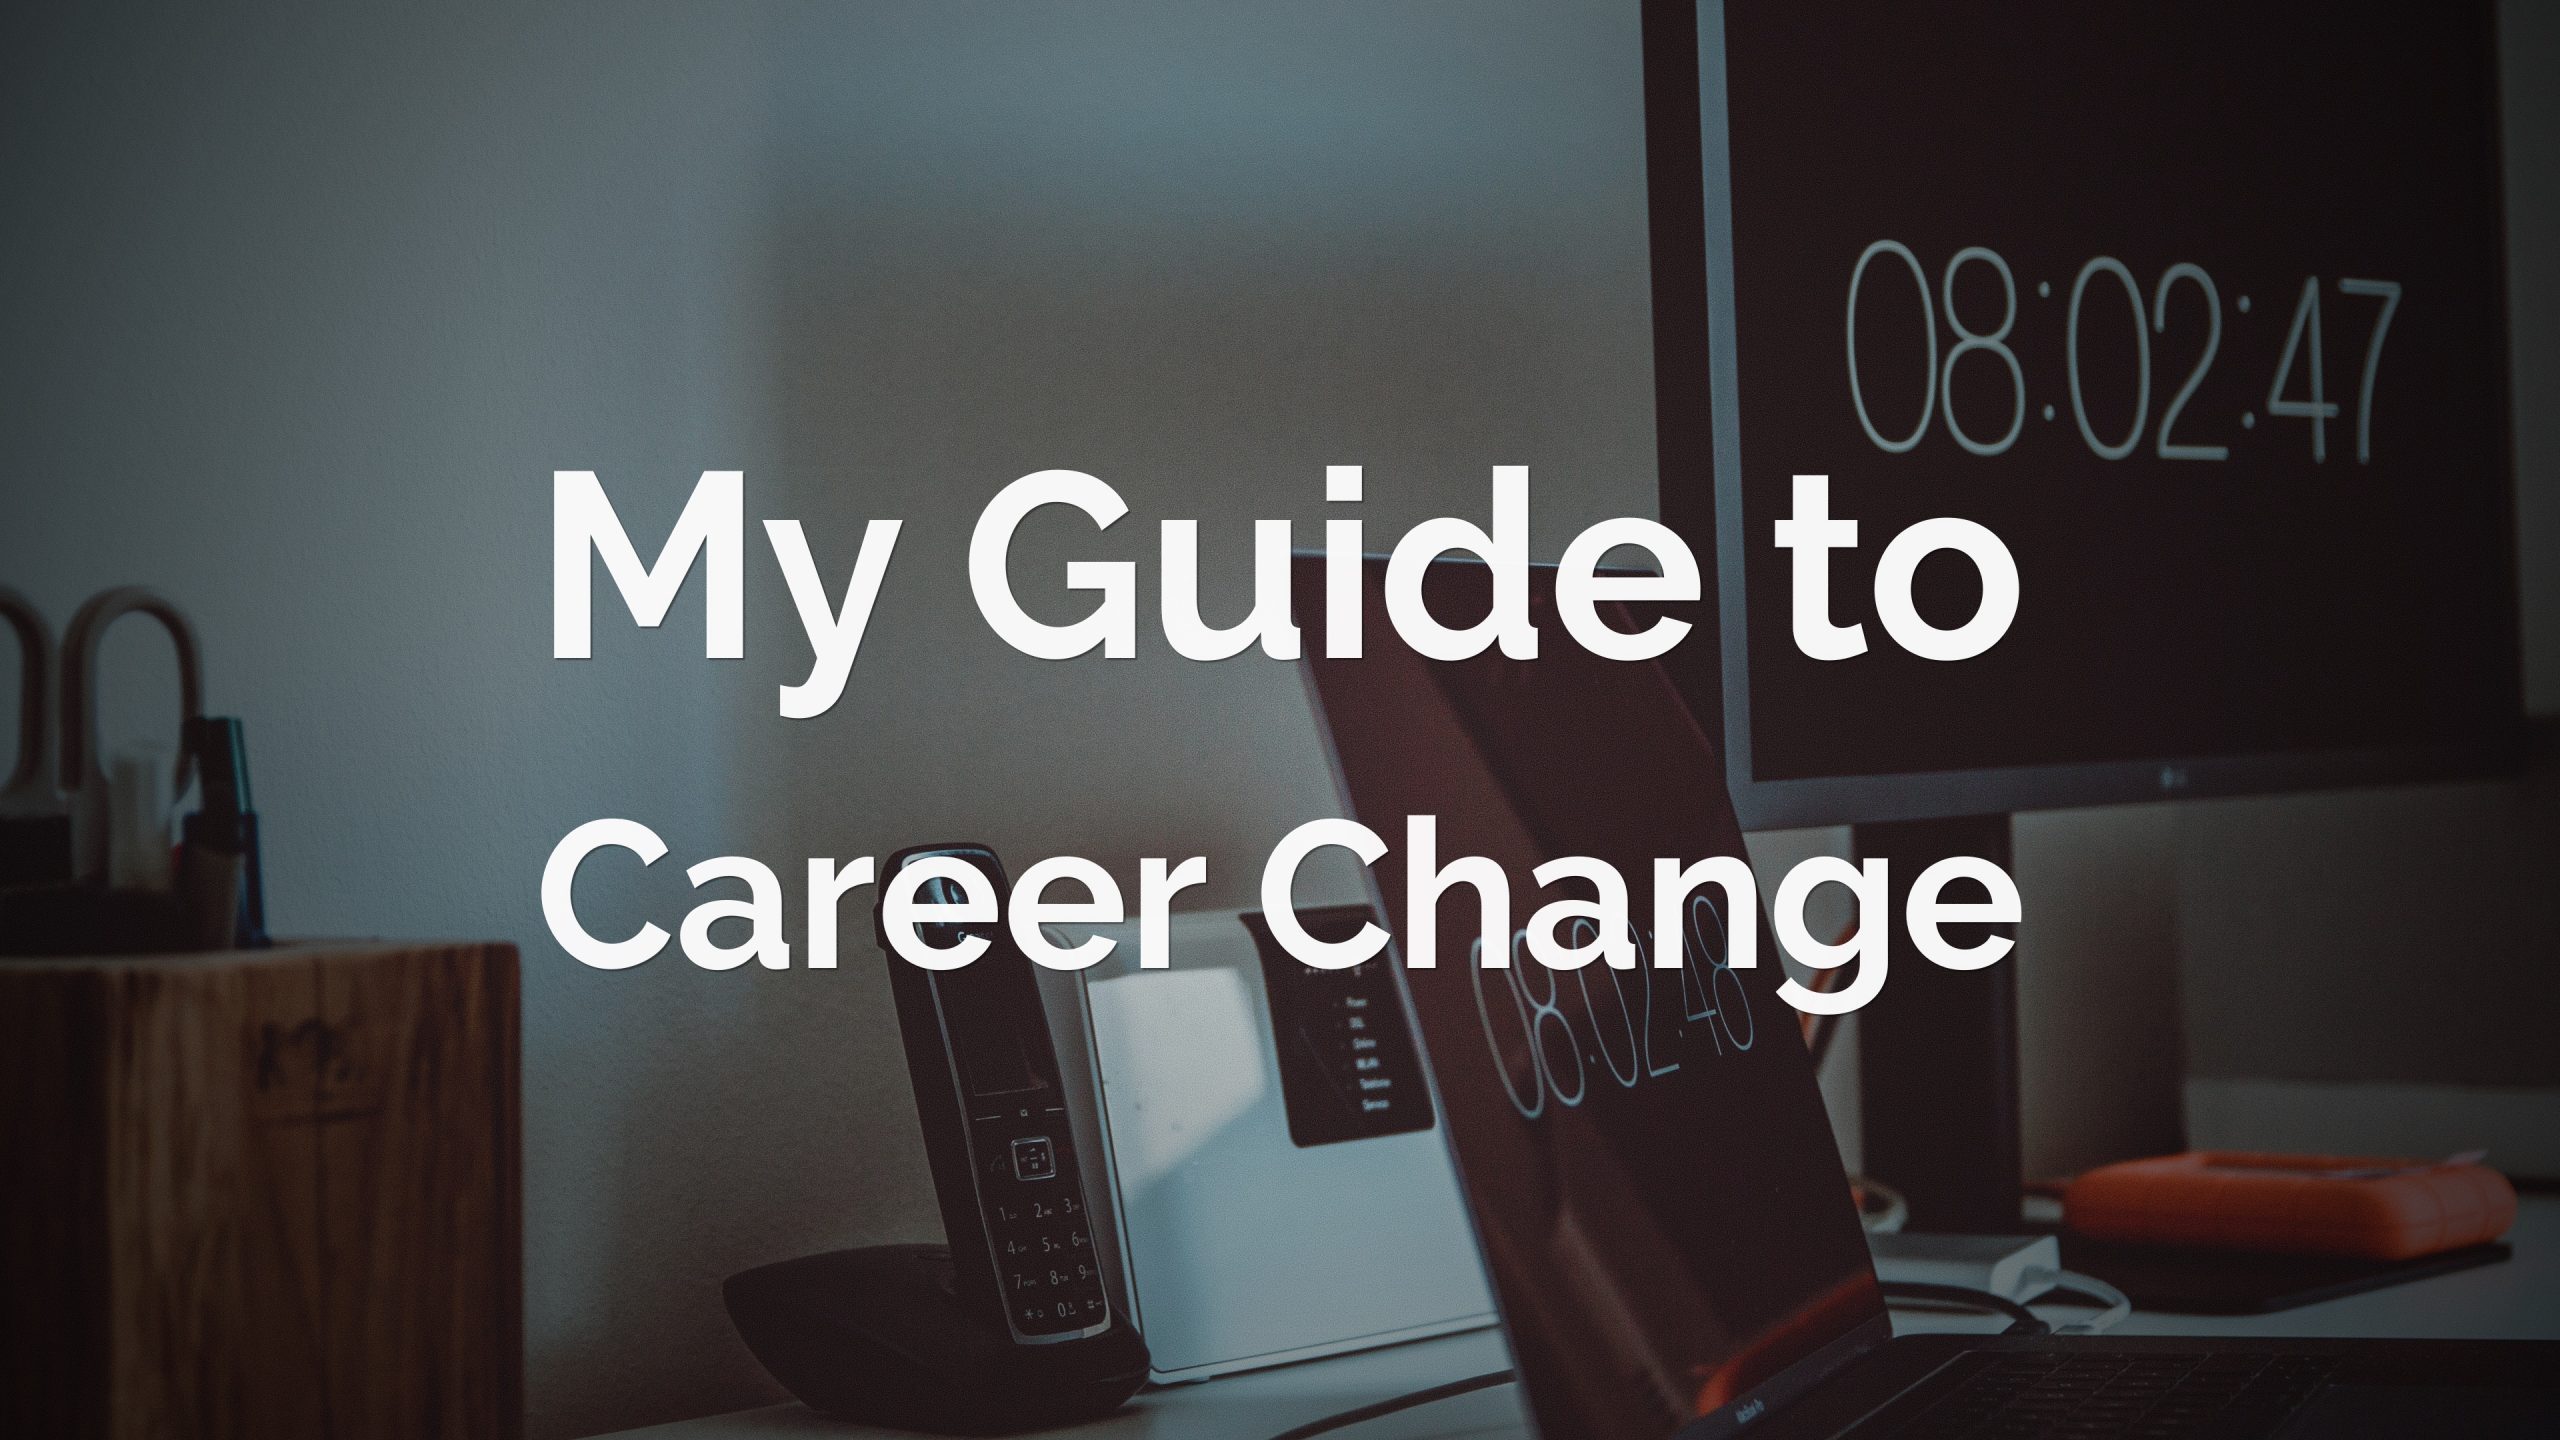 My Gude to Career Change Text